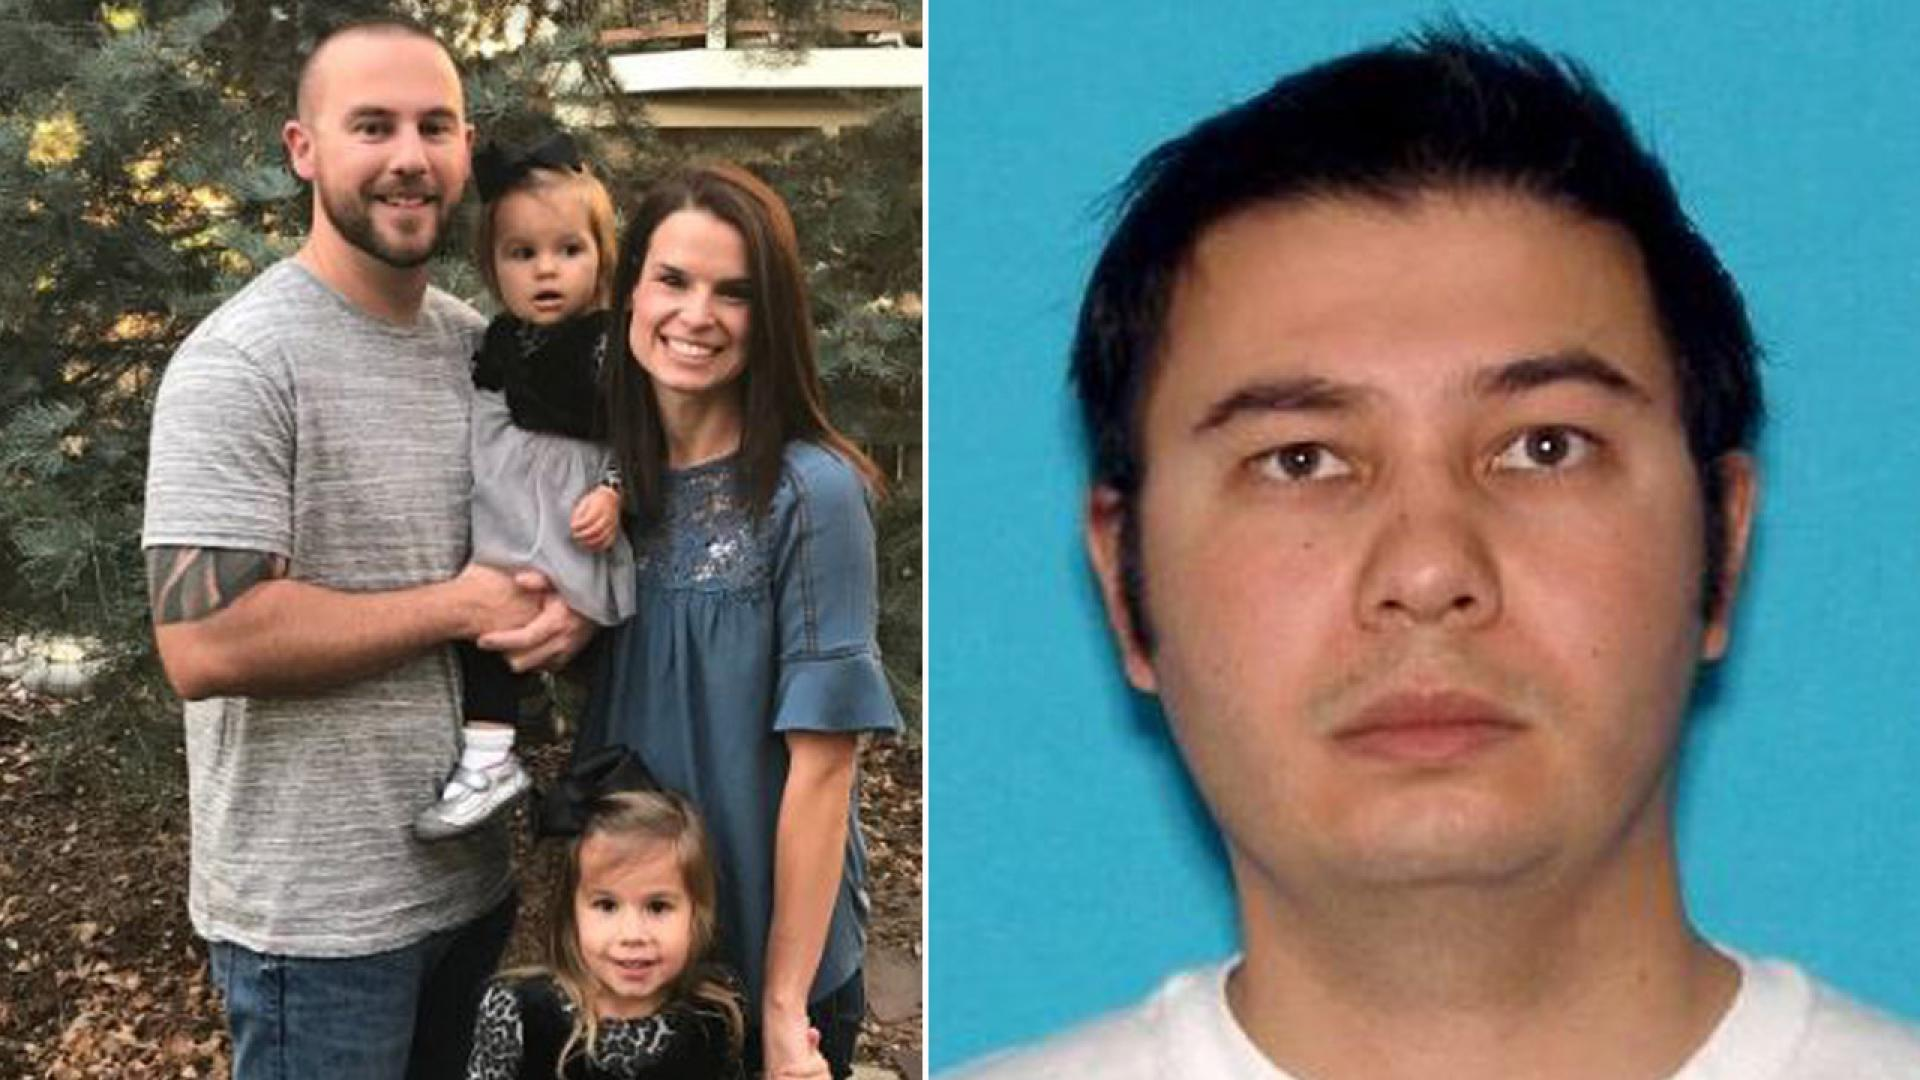 Zackari Parrish, left, leaves a wife and two daughters after gunman Matthew Riehl, right, opened fire in Colorado.